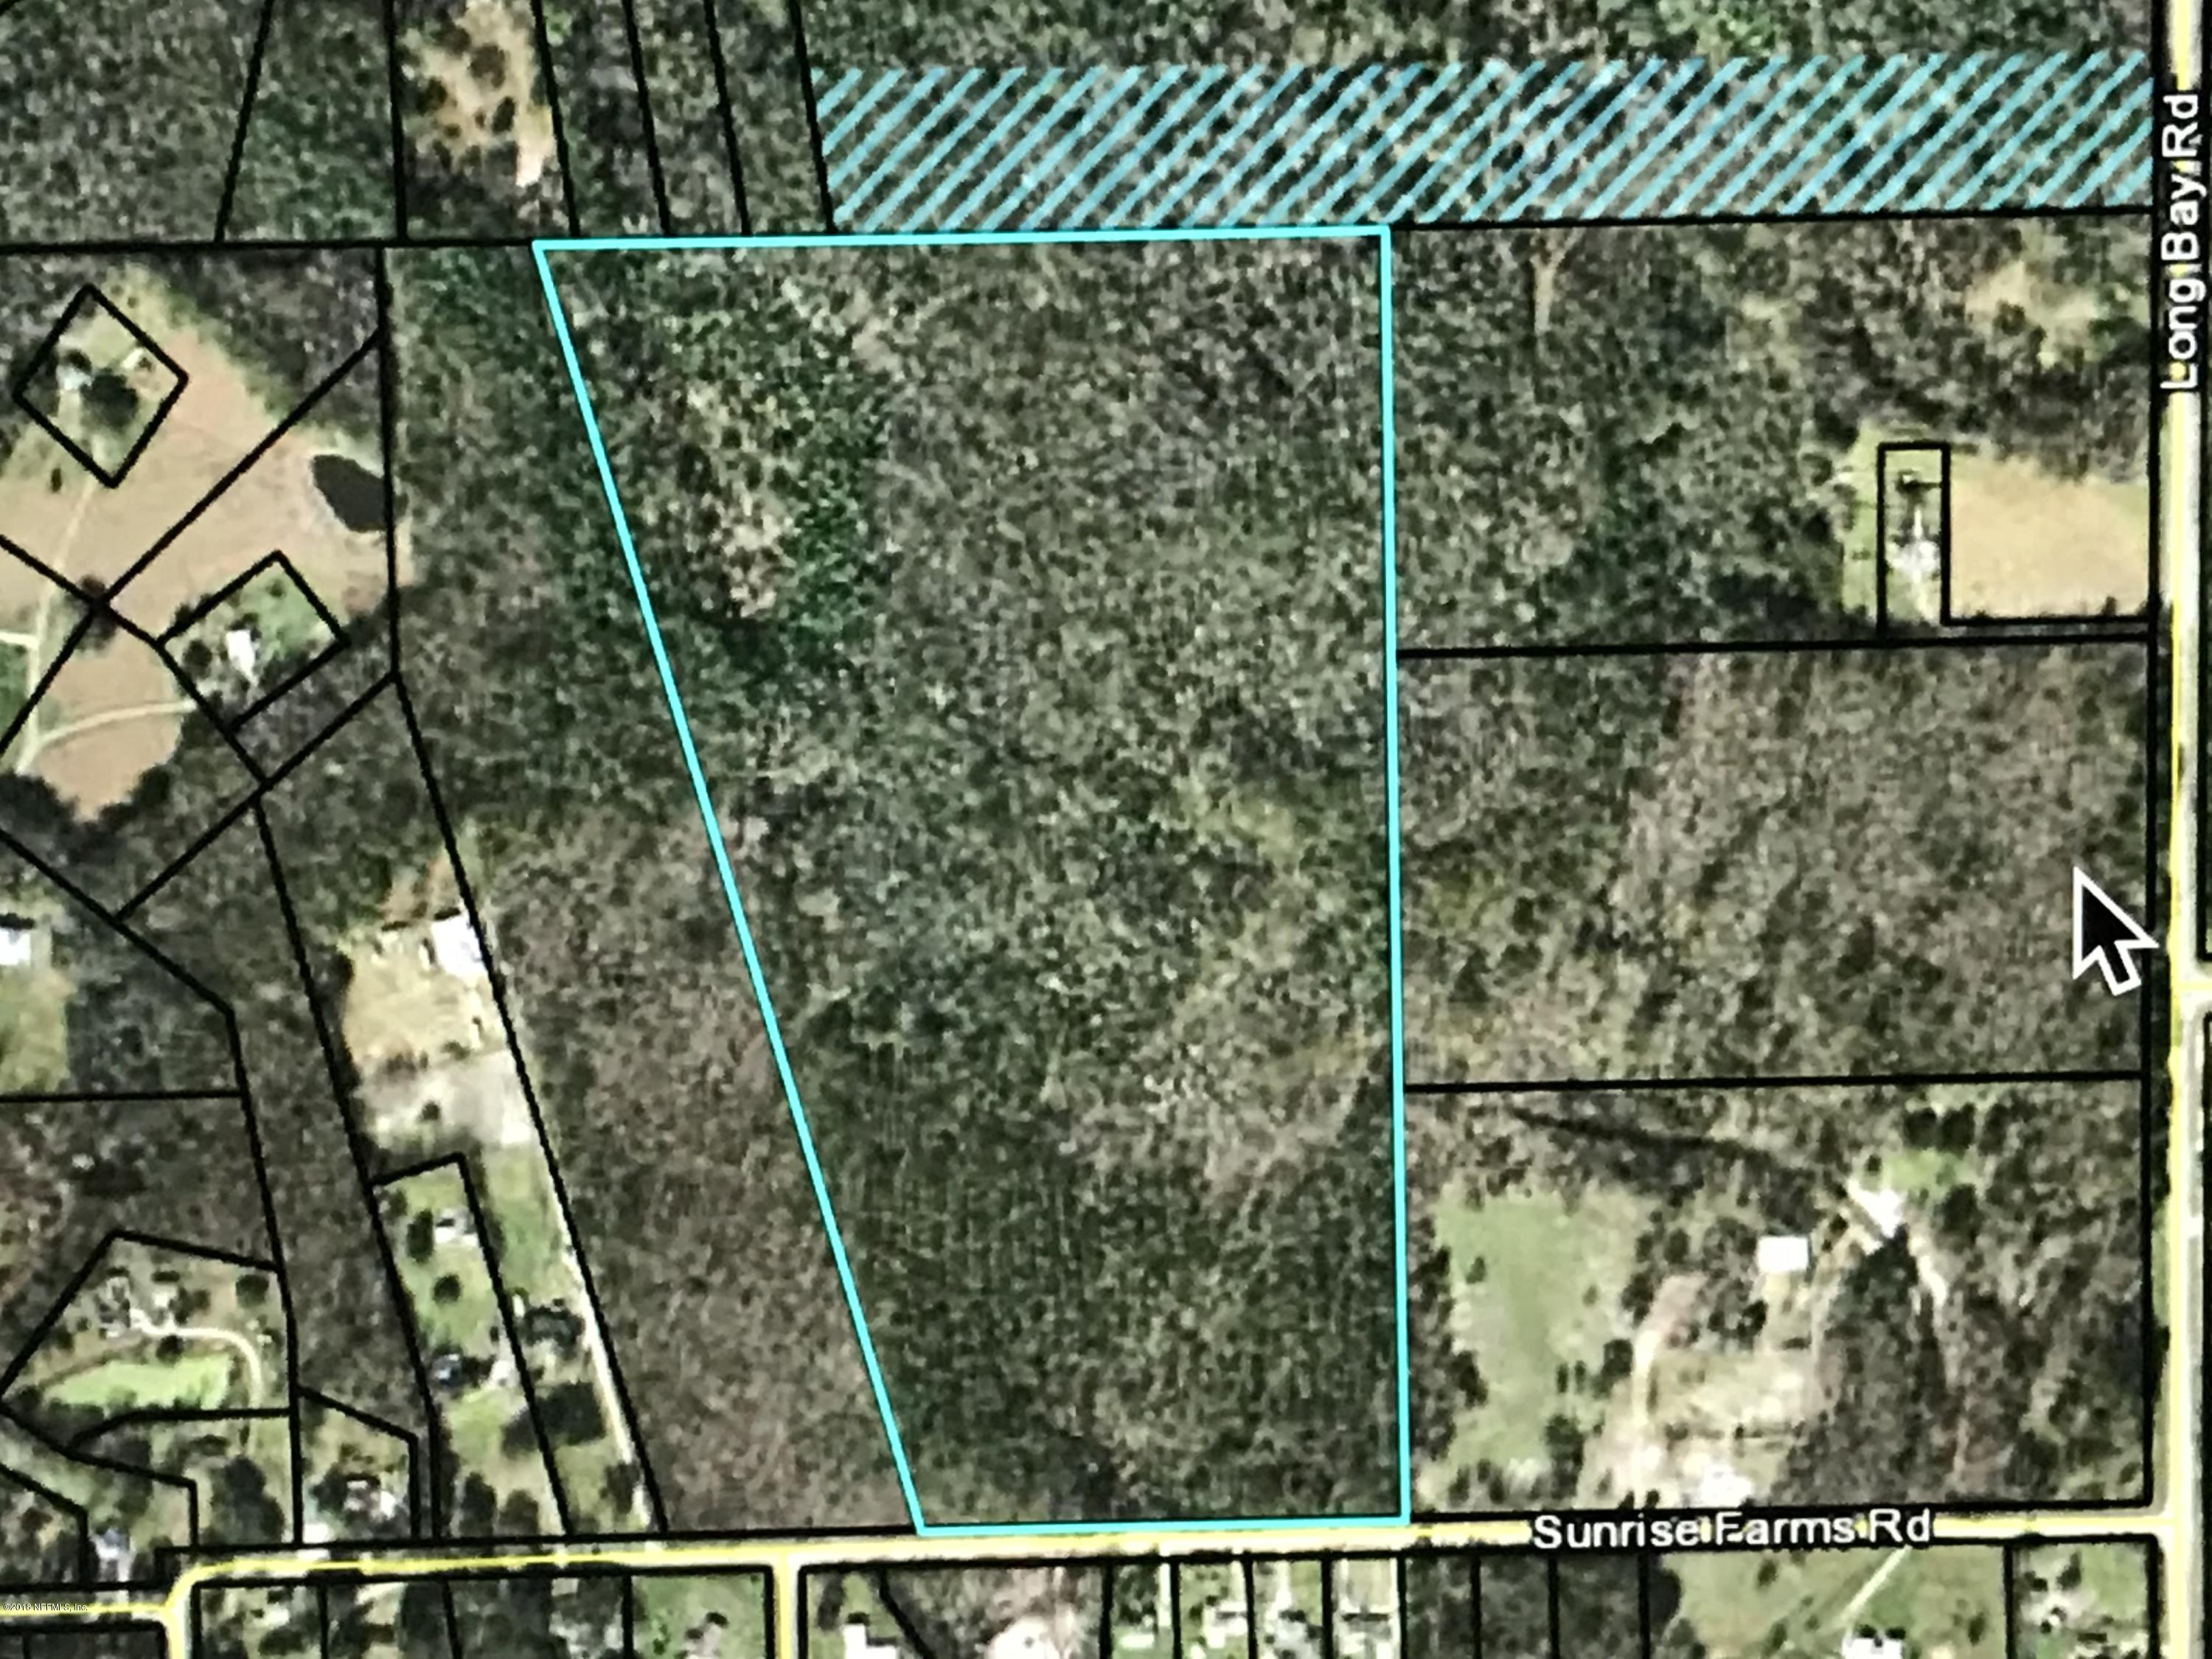 0 SUNRISE FARM, MIDDLEBURG, FLORIDA 32068, ,Vacant land,For sale,SUNRISE FARM,938869